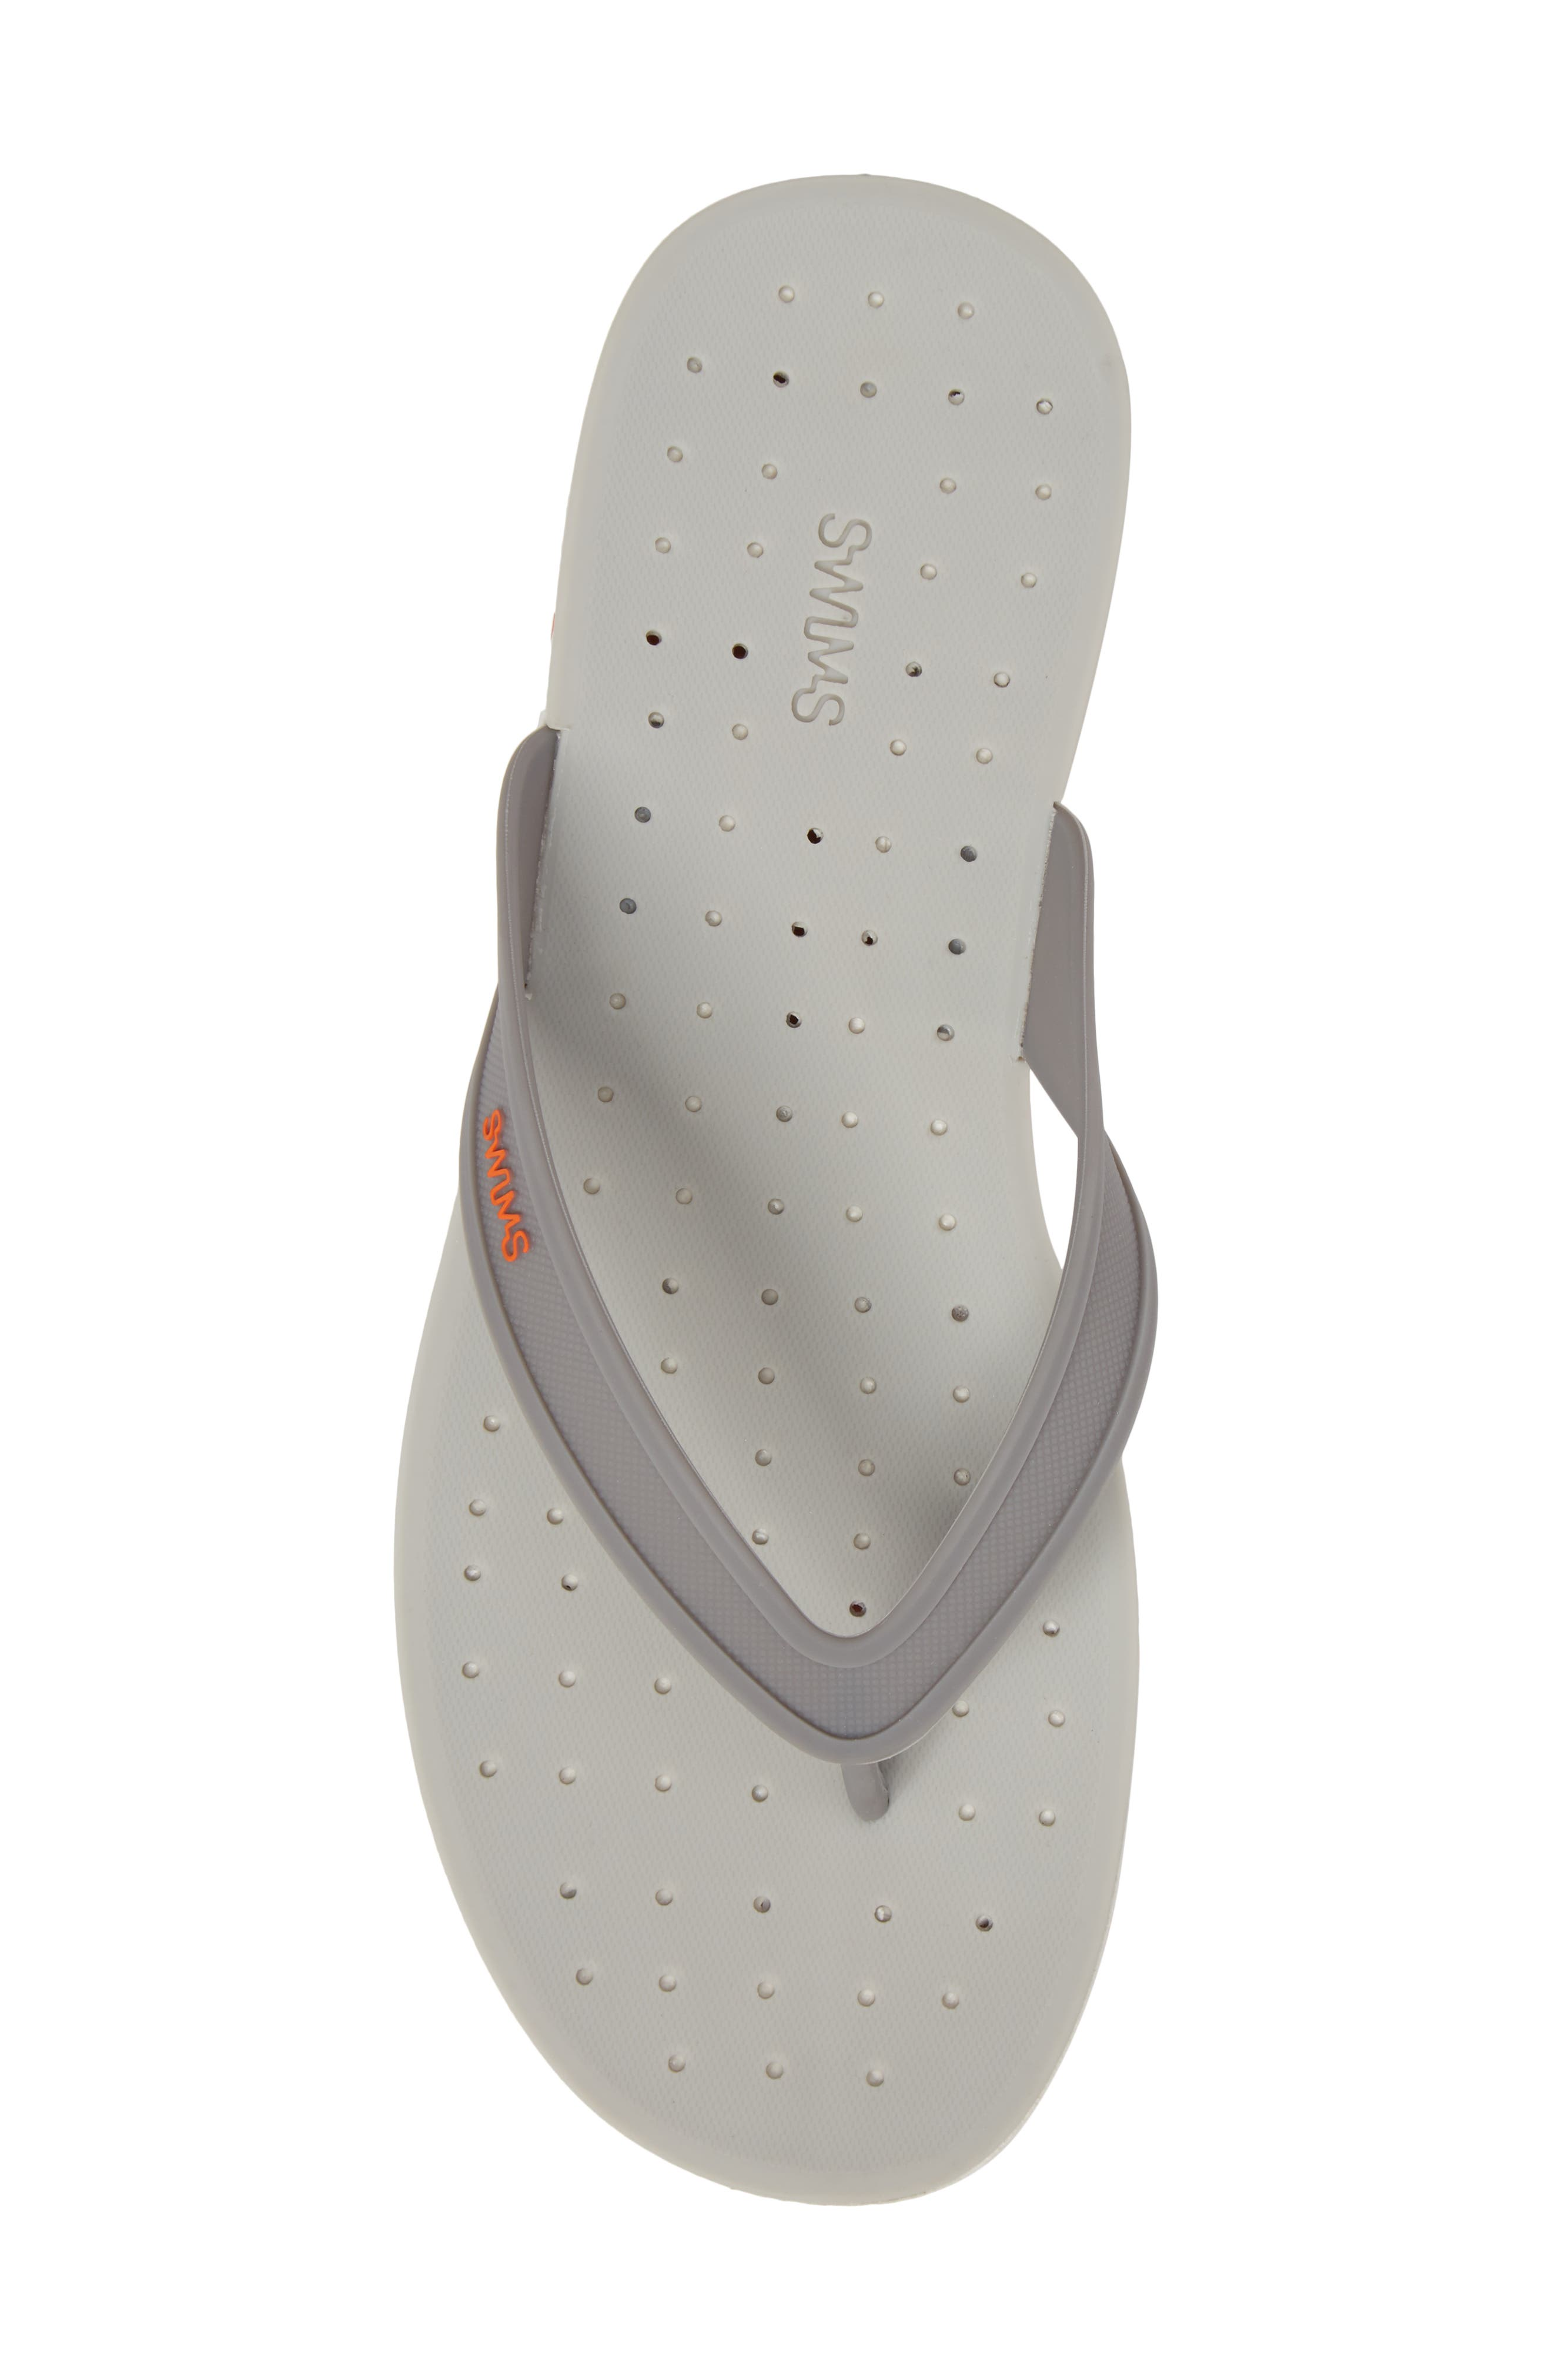 Breeze Flip Flop,                             Alternate thumbnail 5, color,                             GRAY / WHITE / ORANGE